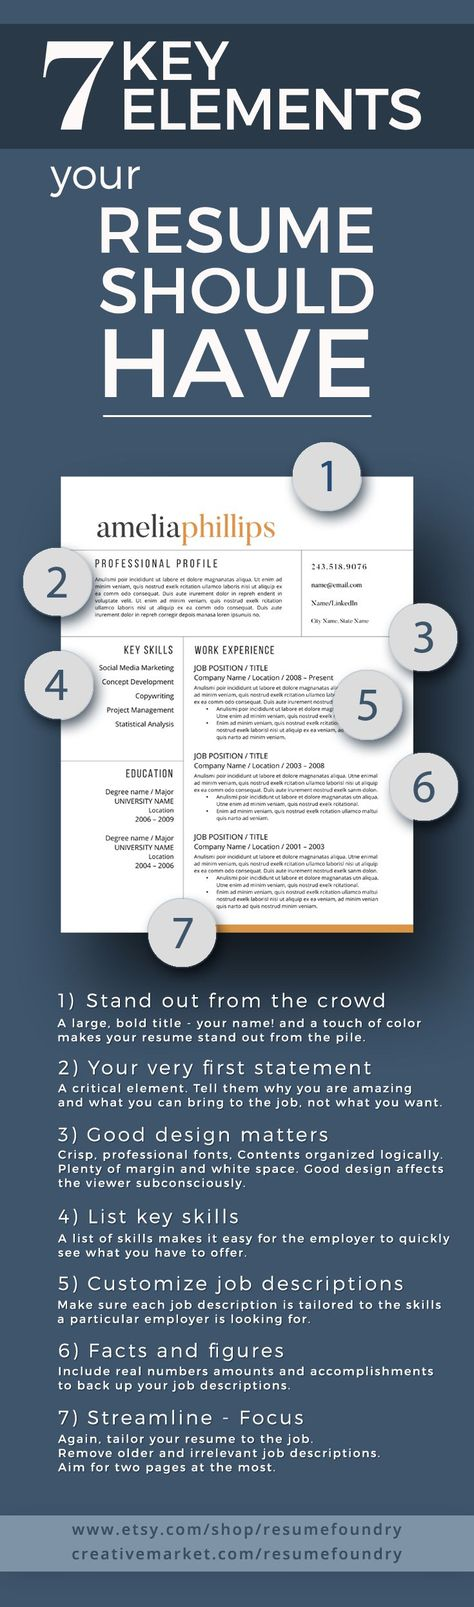 How To Make Your Resume Stand Out Cool Winning Resume Writing Top Do's And Don'ts  Resume Writing Life